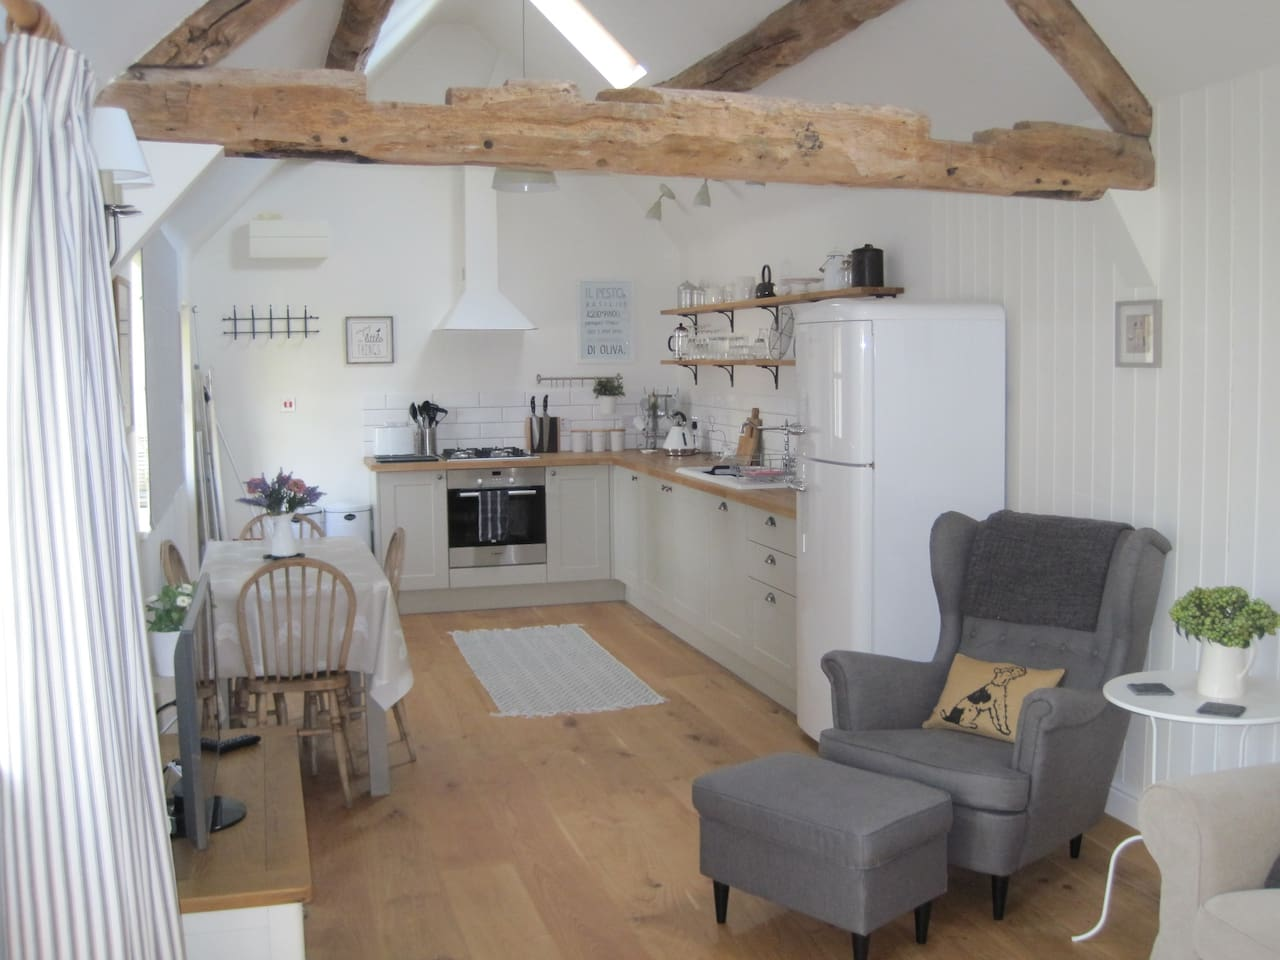 Bright and airy living space with vaulted ceiling and exposed oak beams